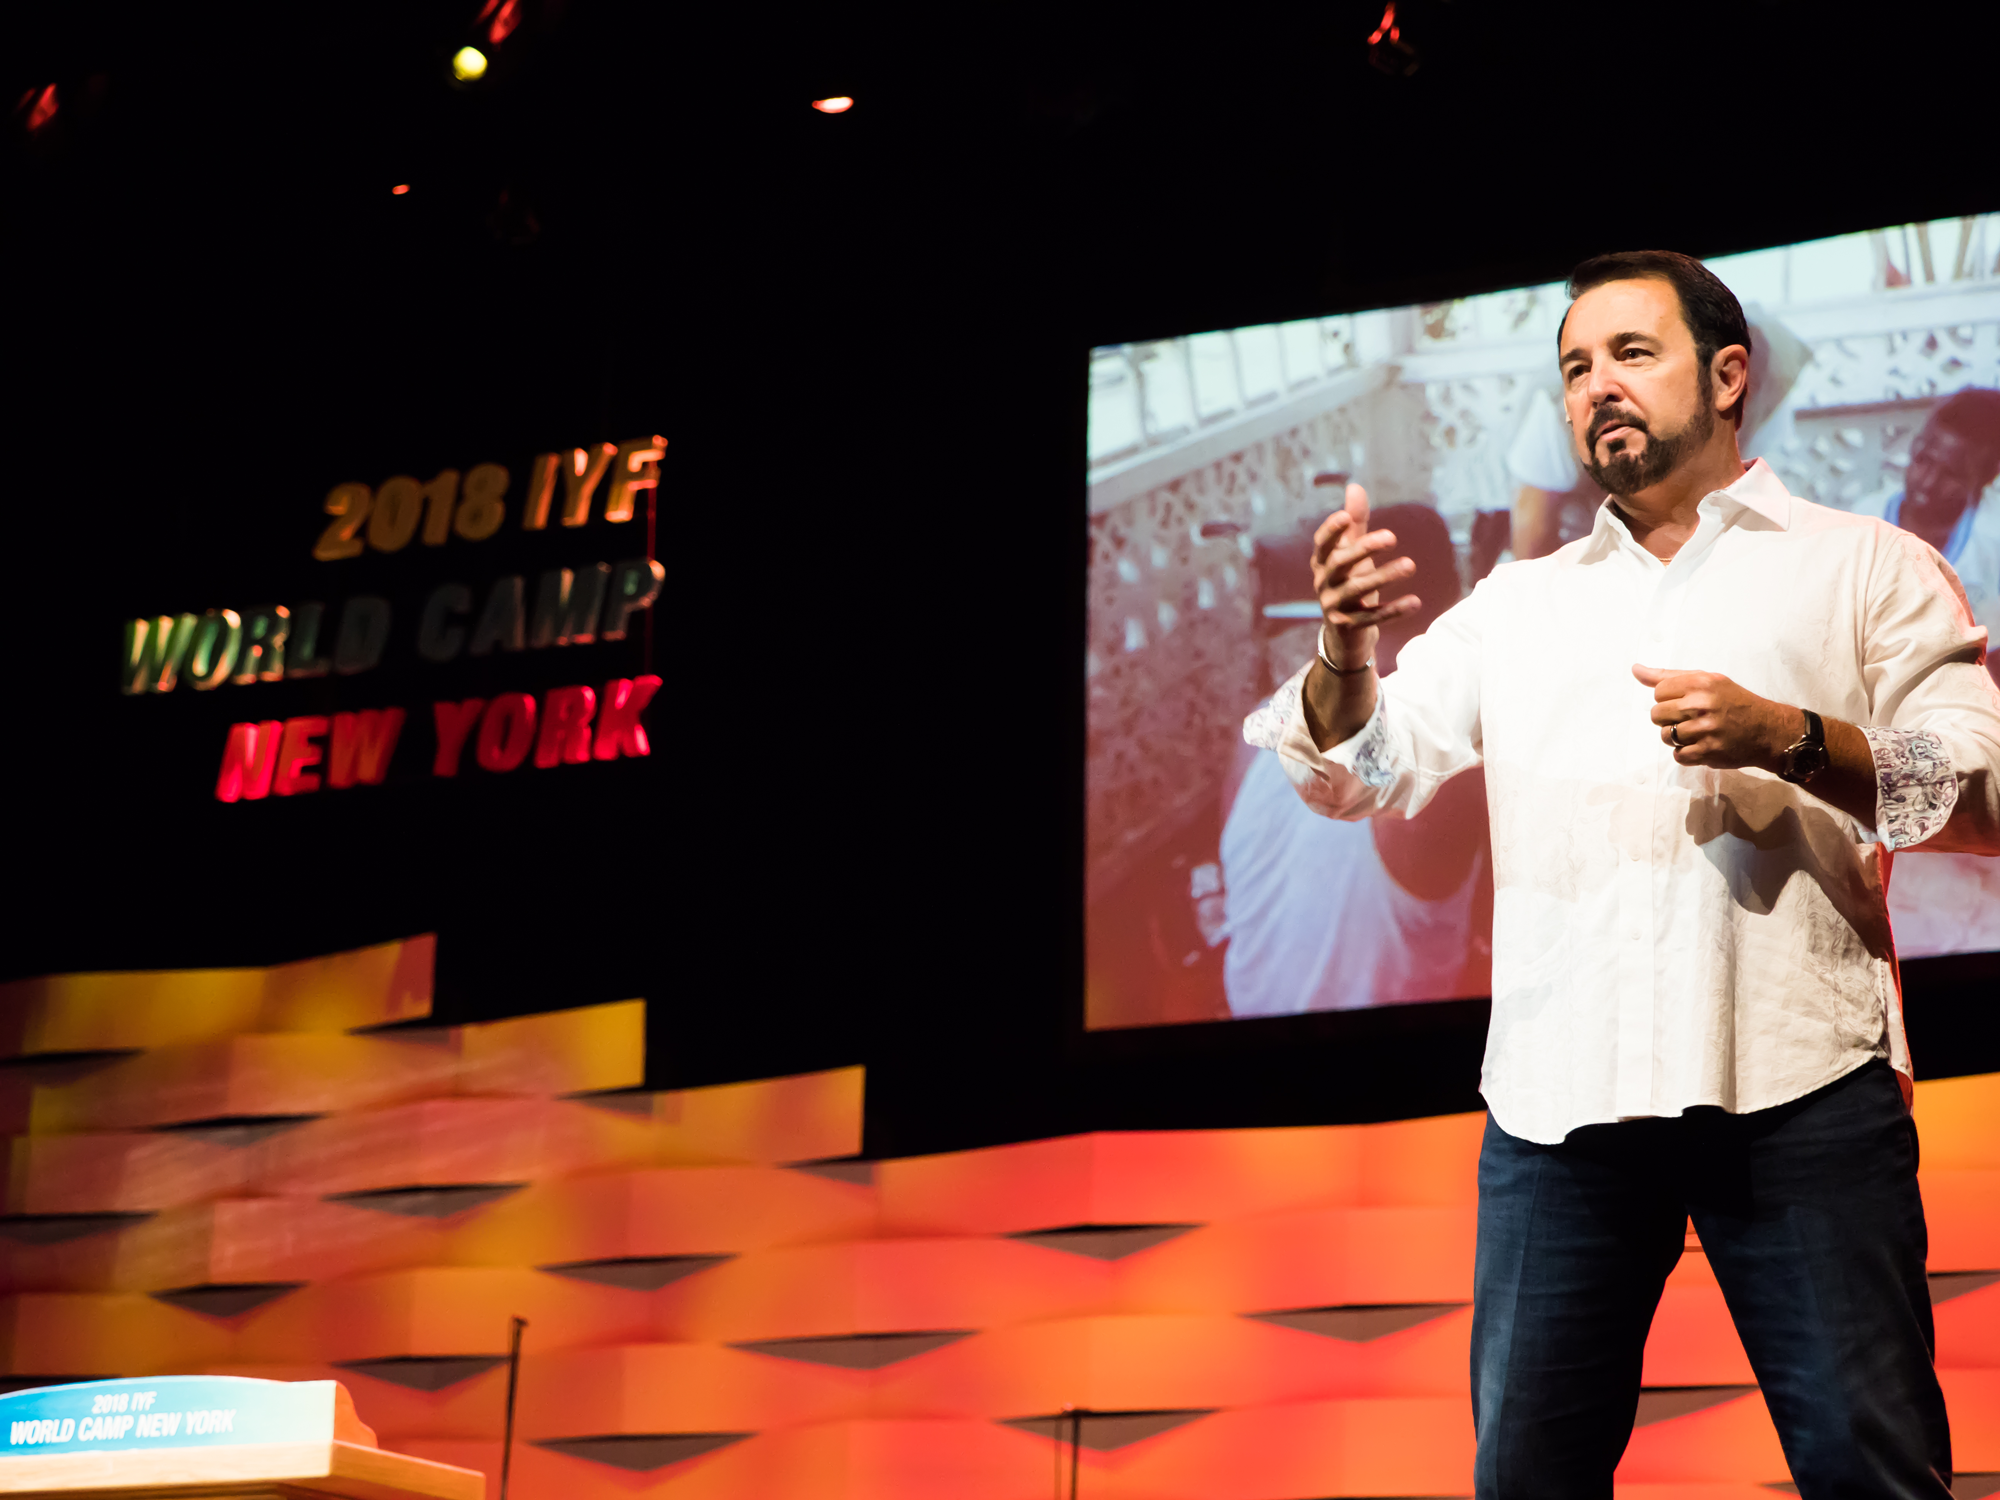 Howard speaks to 1,500 of tomorrow's leaders at the International Youth Fellowship in New York City